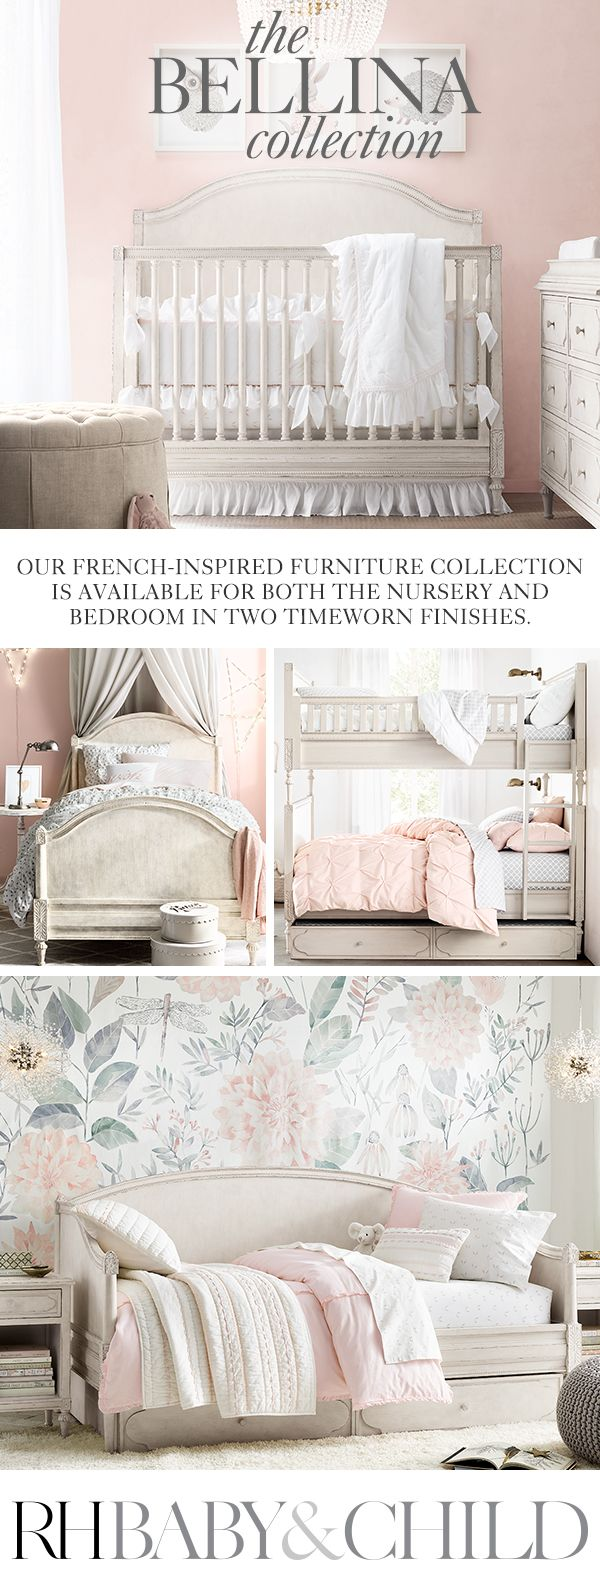 Create a feminine feel with our exquisitely detailed, French-inspired design. Sweetly sophisticated, the collection features raised moldings, rosette carvings and exquisite turned feet. Shop the Bellina furniture collection at RH Baby & Child.